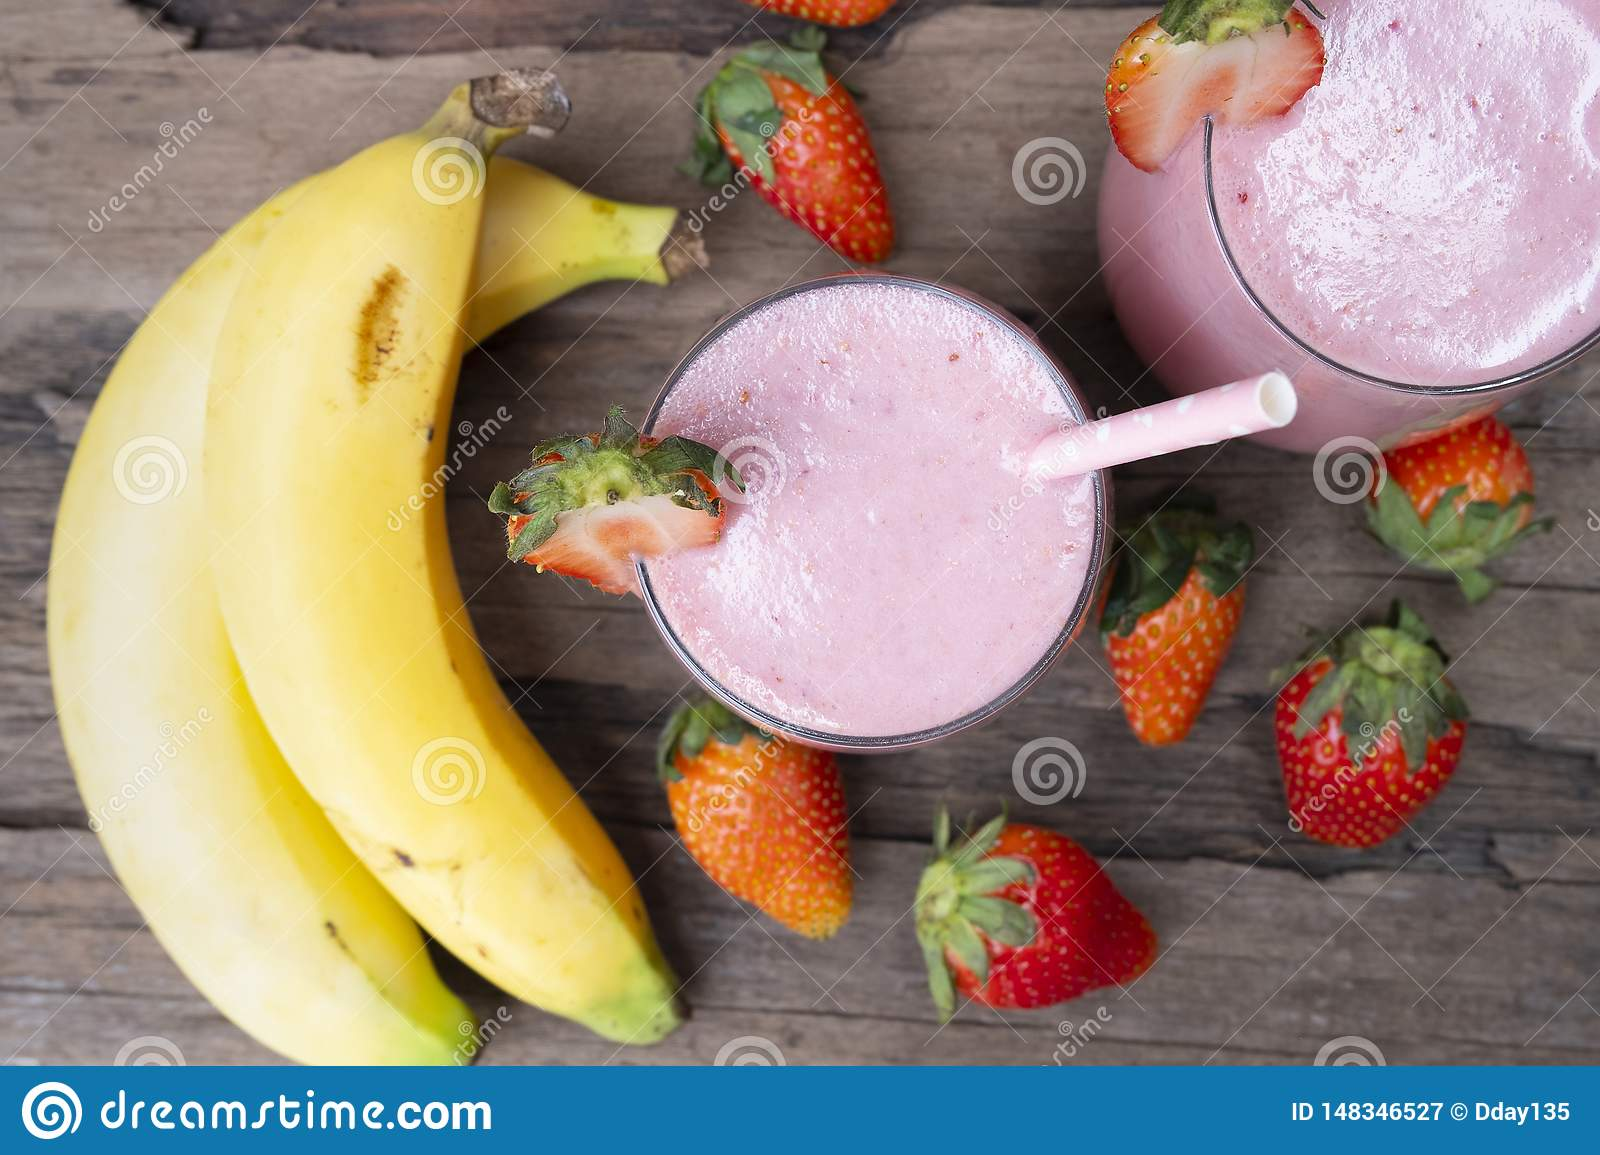 Strawberry Mix Banana Smoothies Red Colorful Fruit Juice